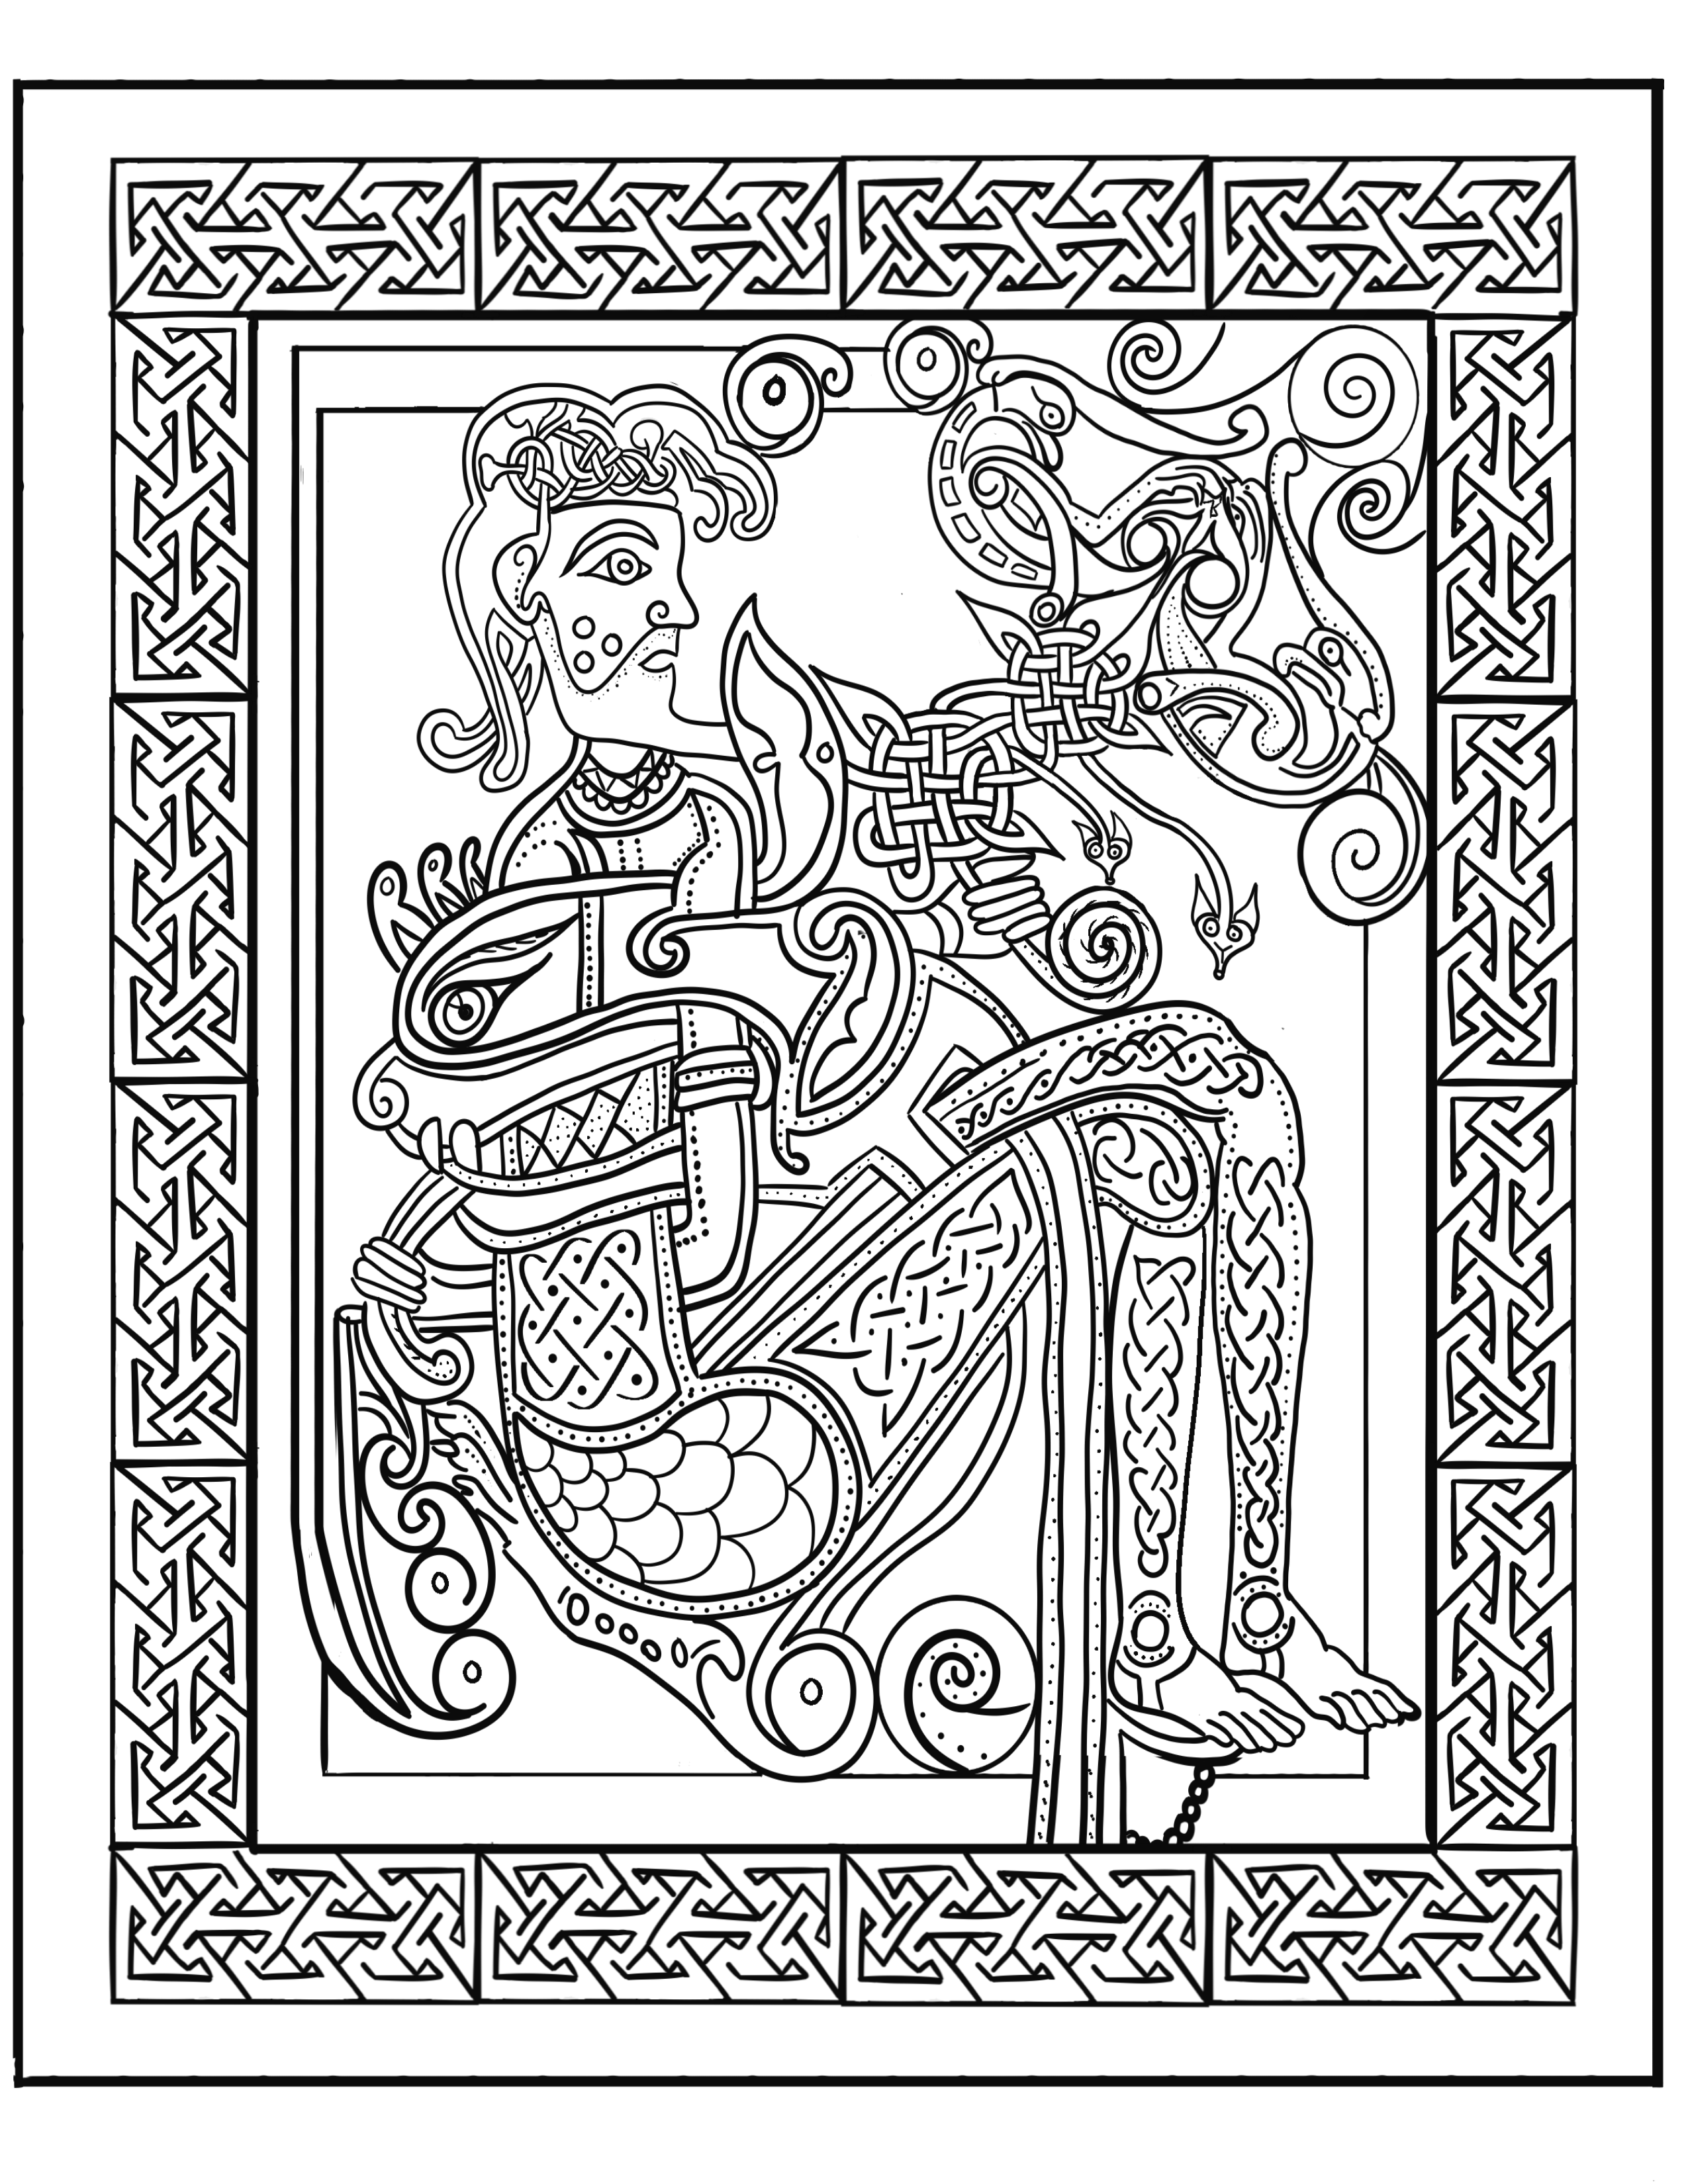 book of kells colouring pages free book of kells coloring pages at getcoloringscom free kells colouring free book pages of